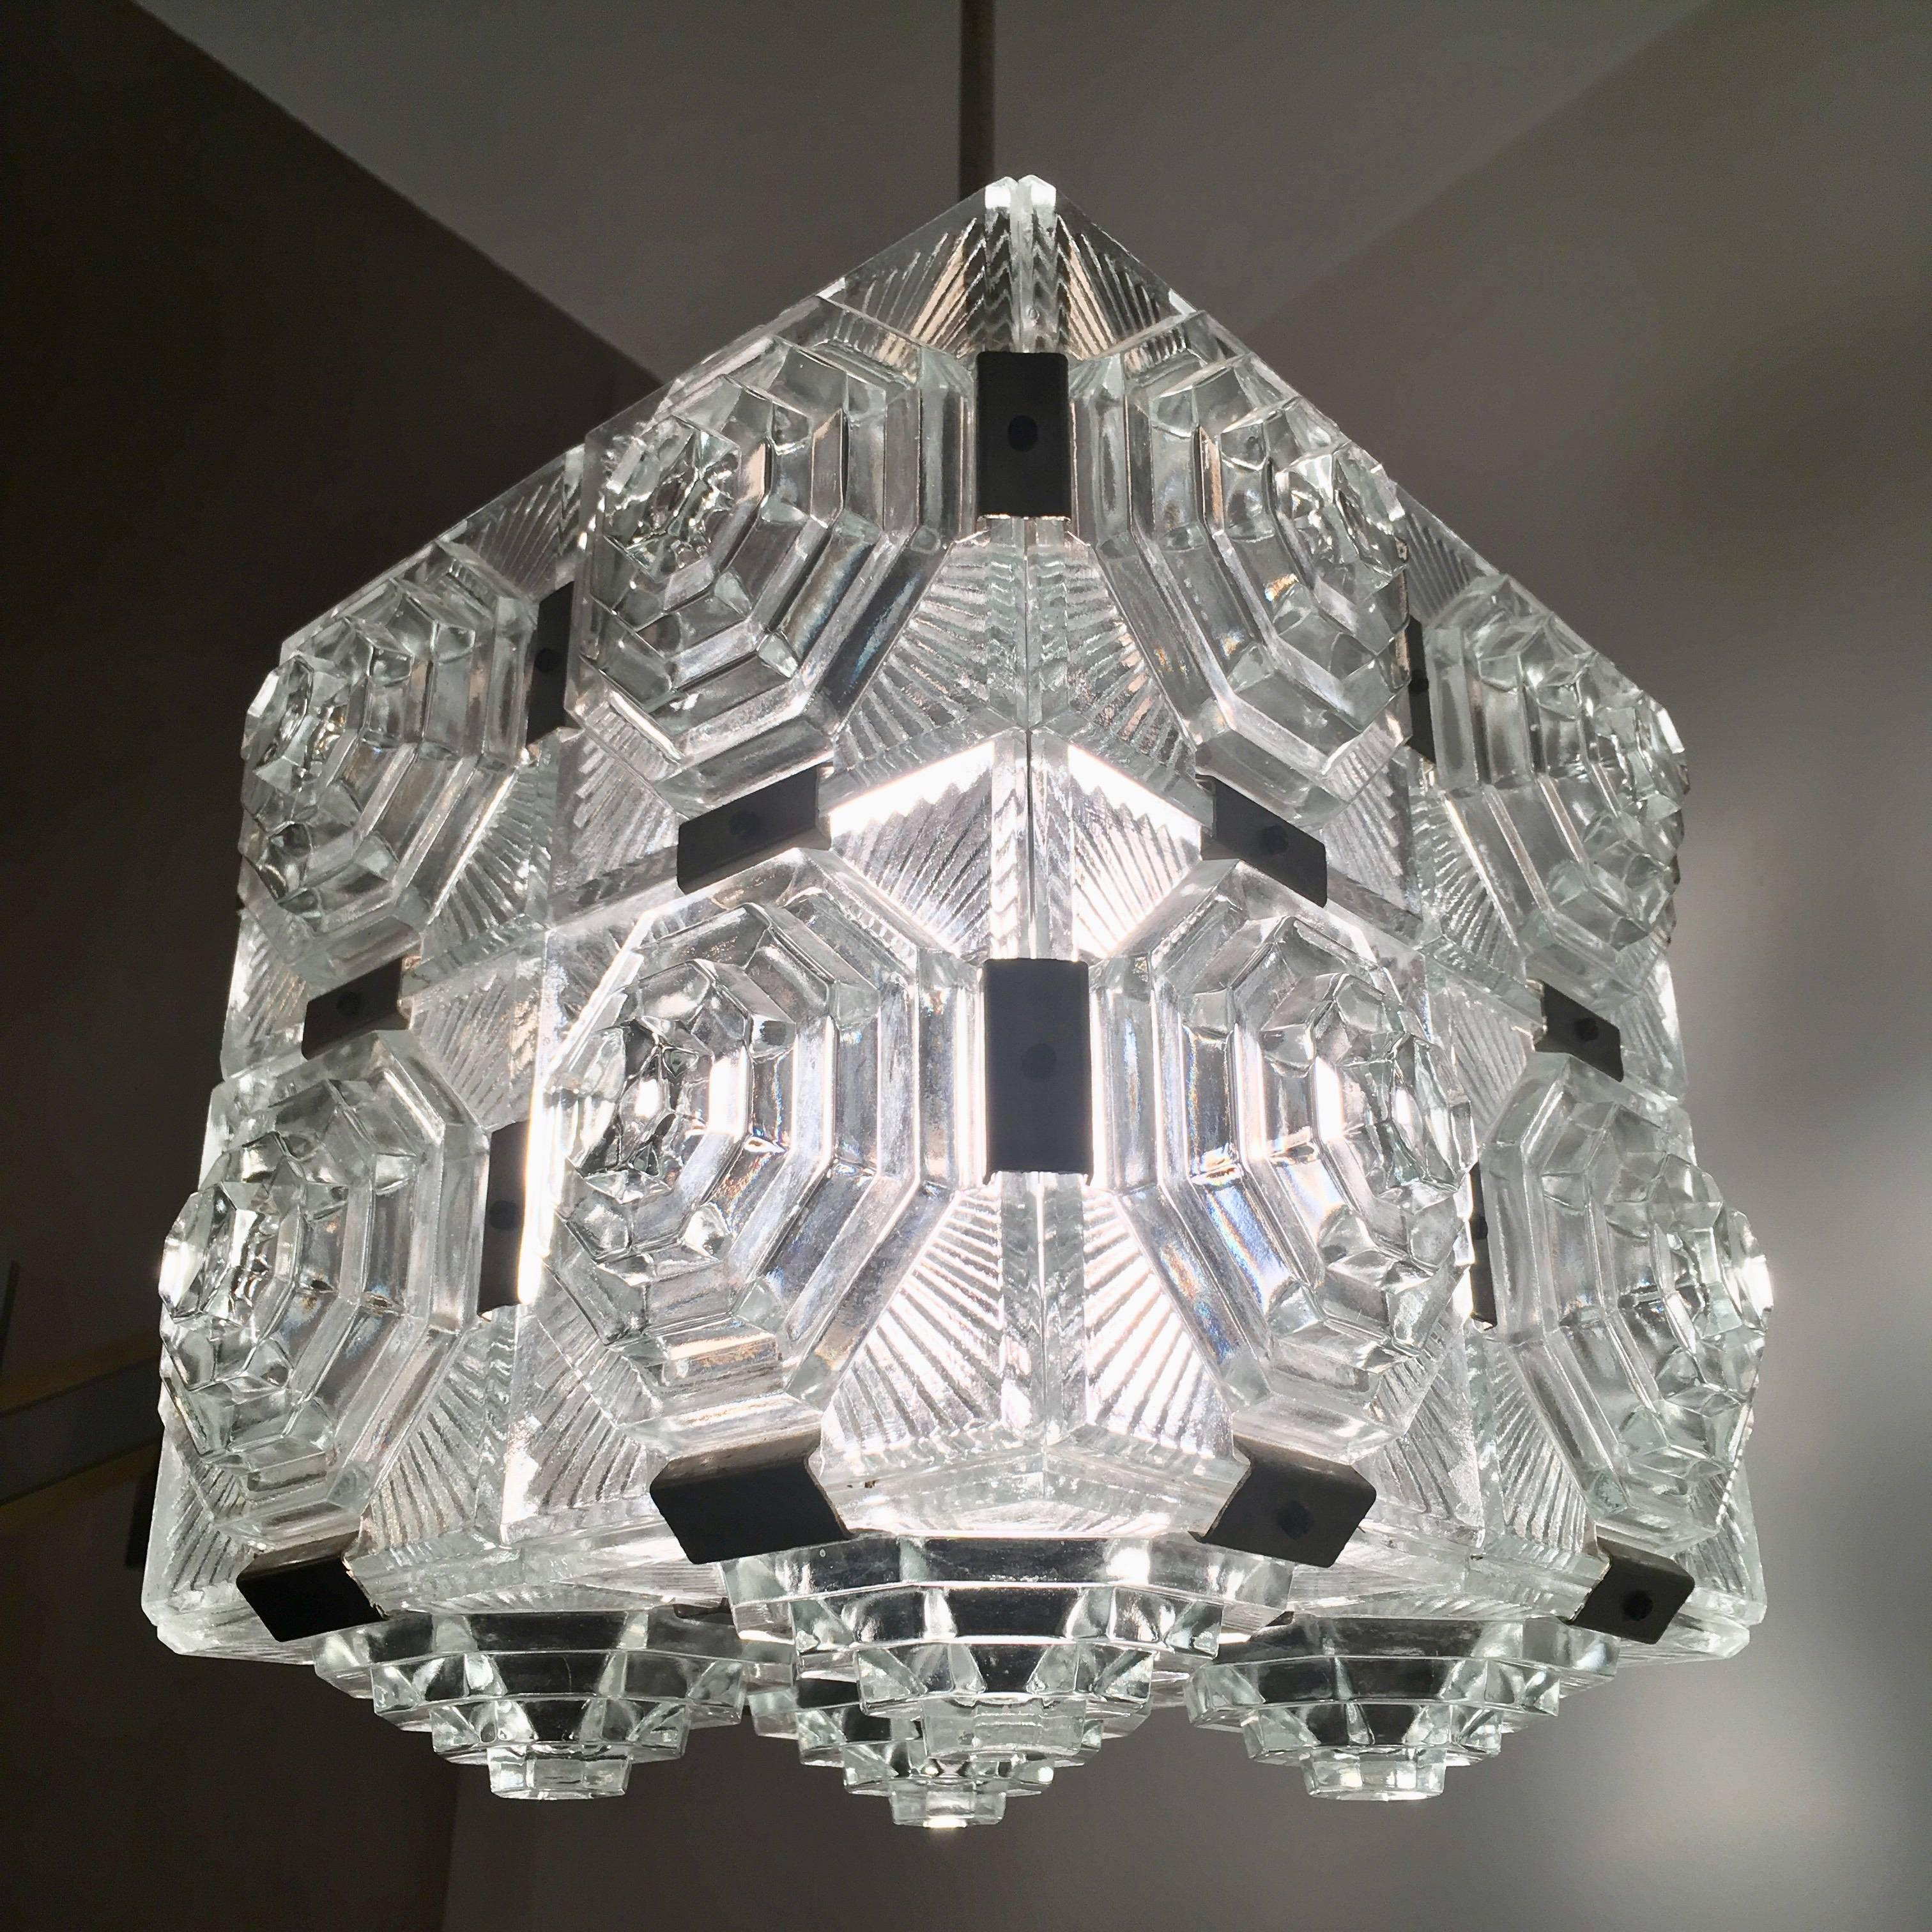 ceiling timothy classic products chandelier light cm oulton lighting volt crystal ts chandeliers